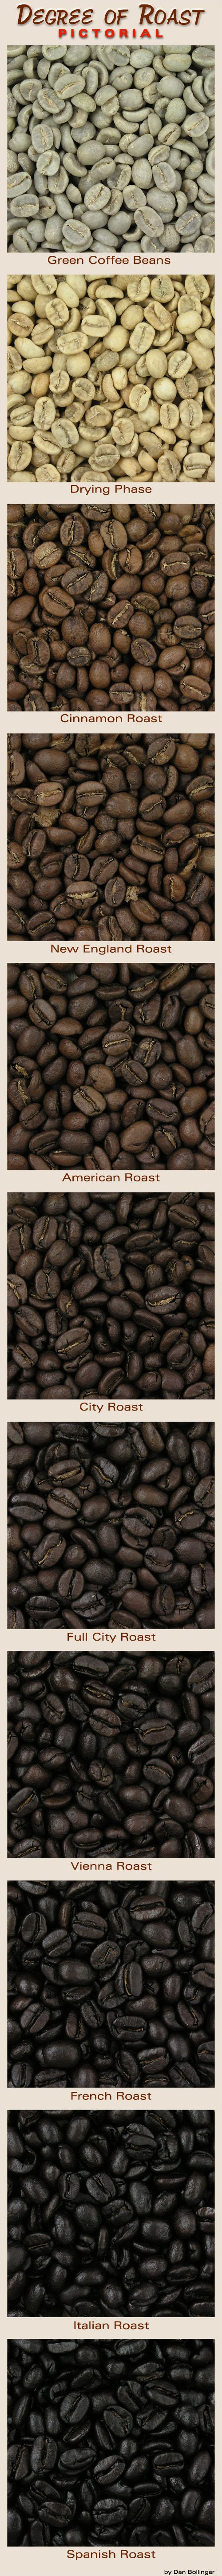 Coffee roasting from beginning to your cup.